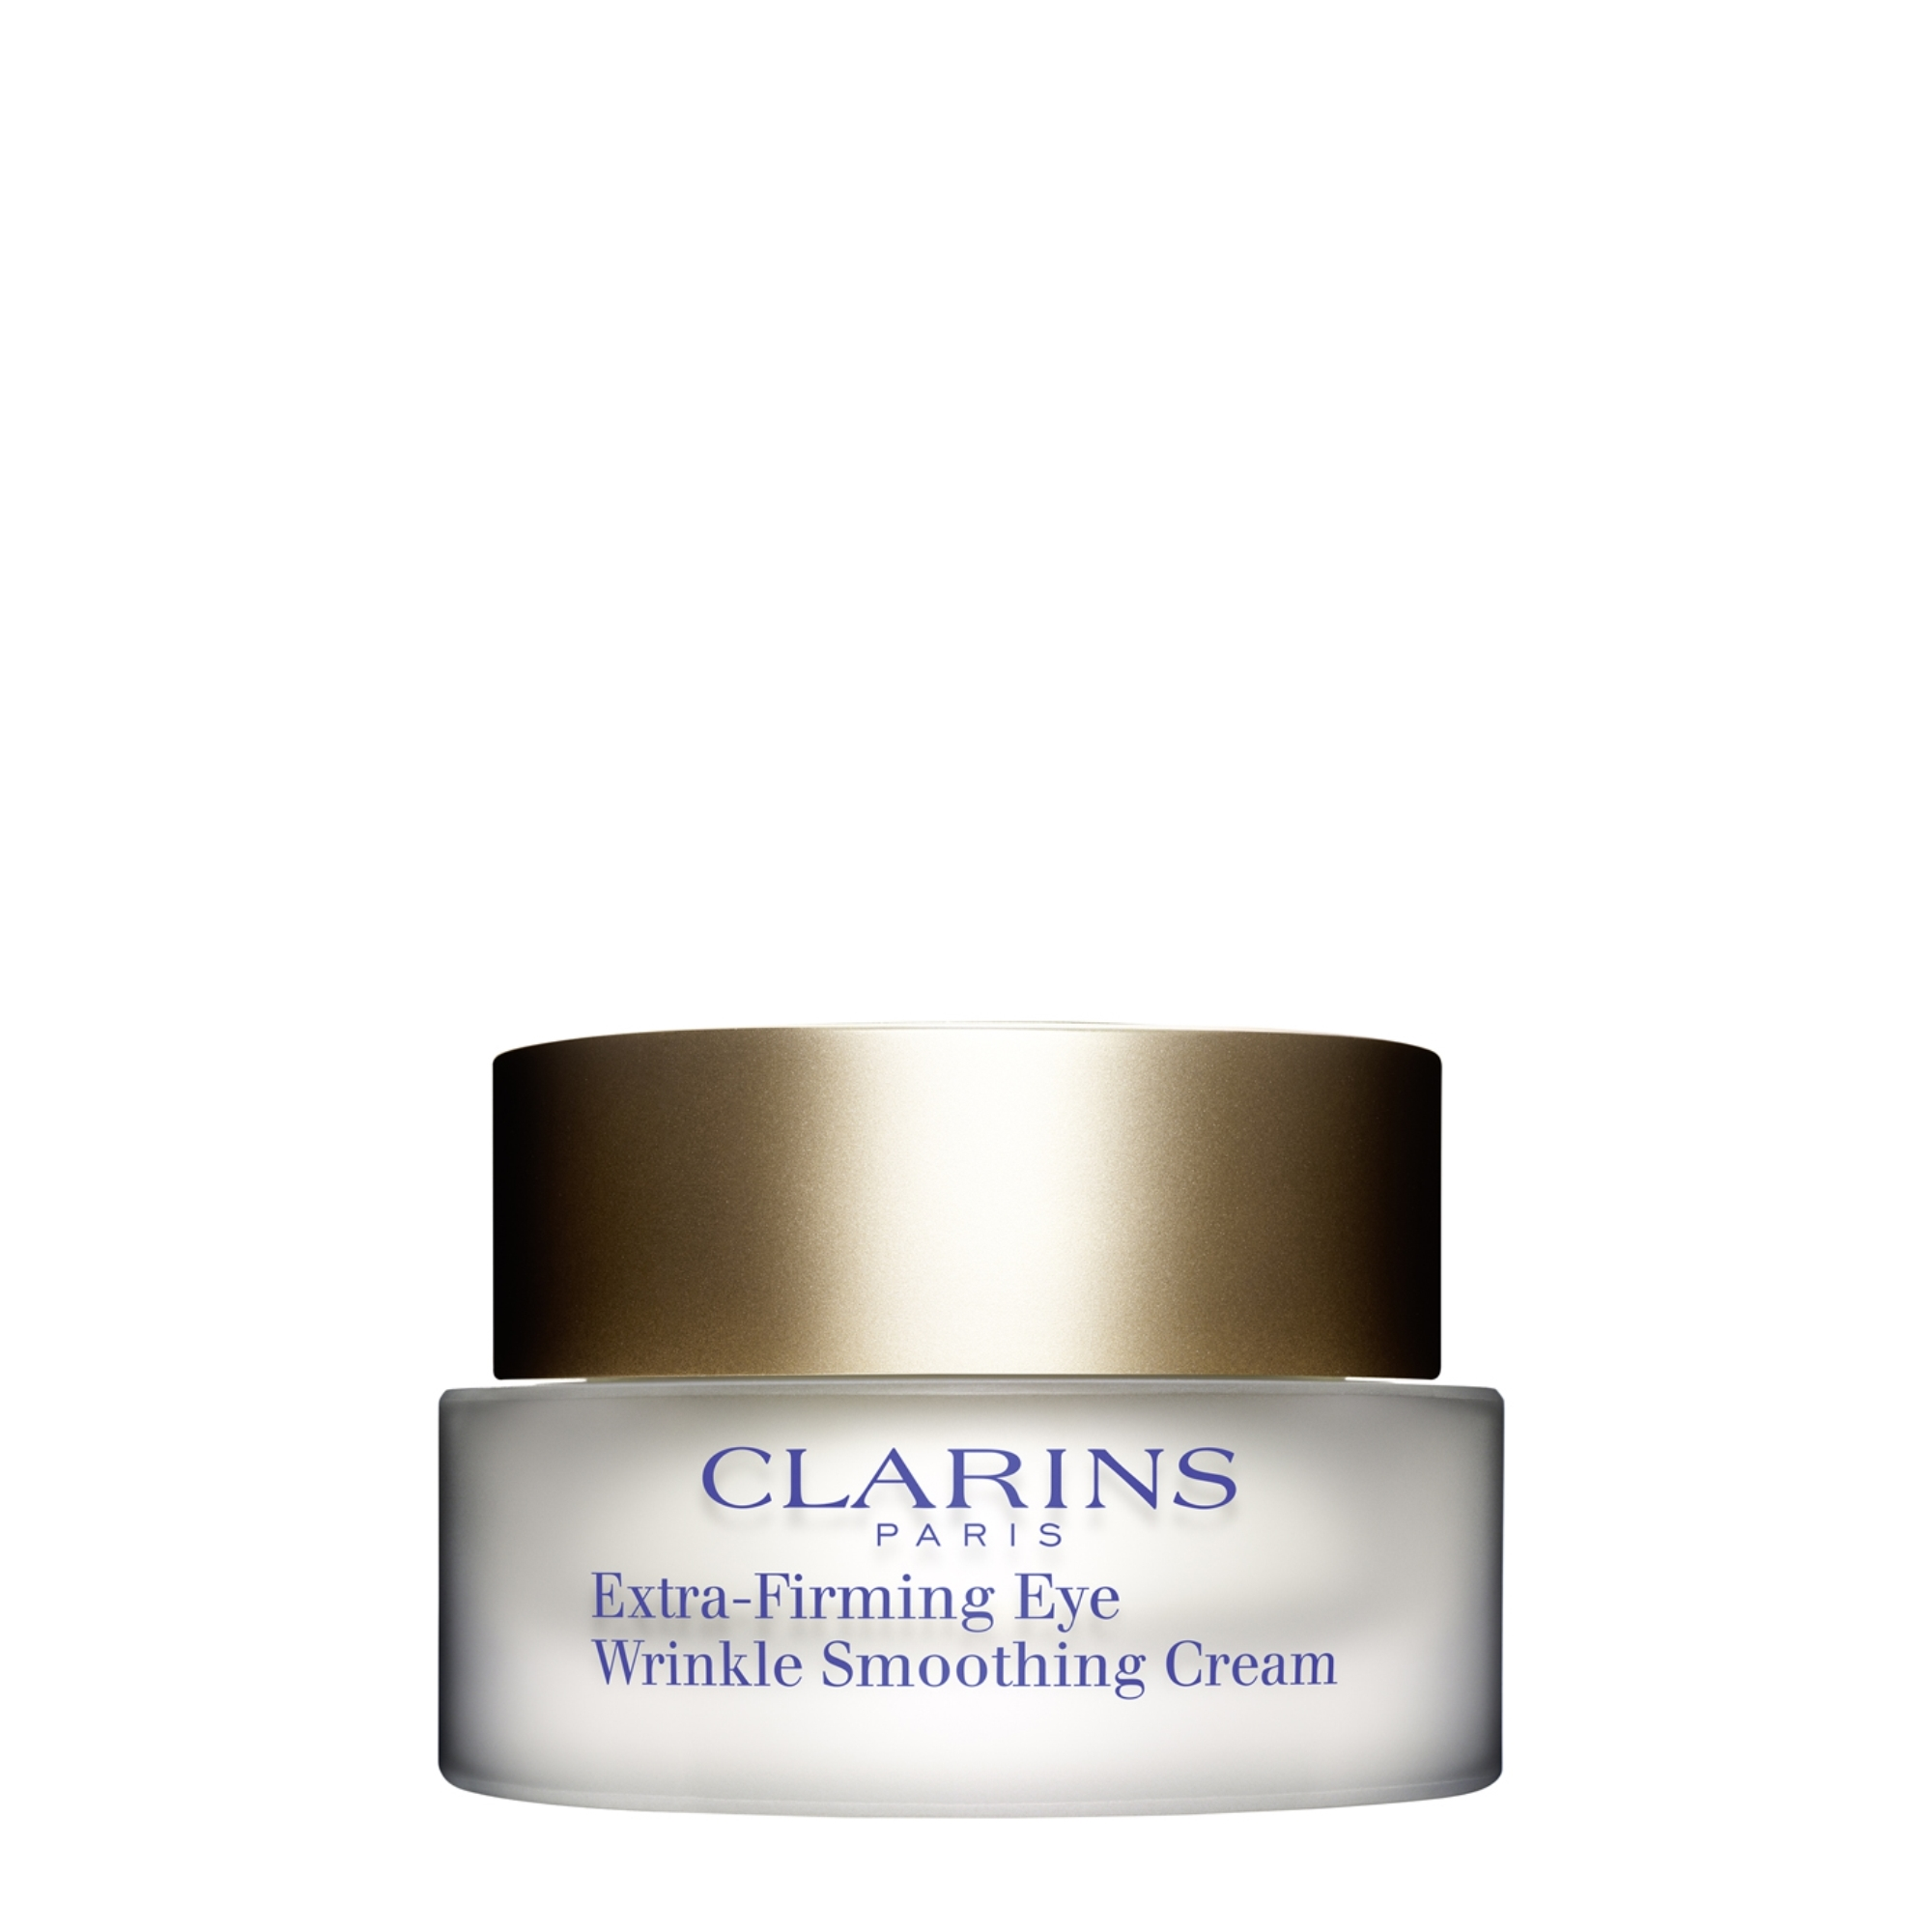 Extra-Firming Eye Wrinkle Smoothing Cream